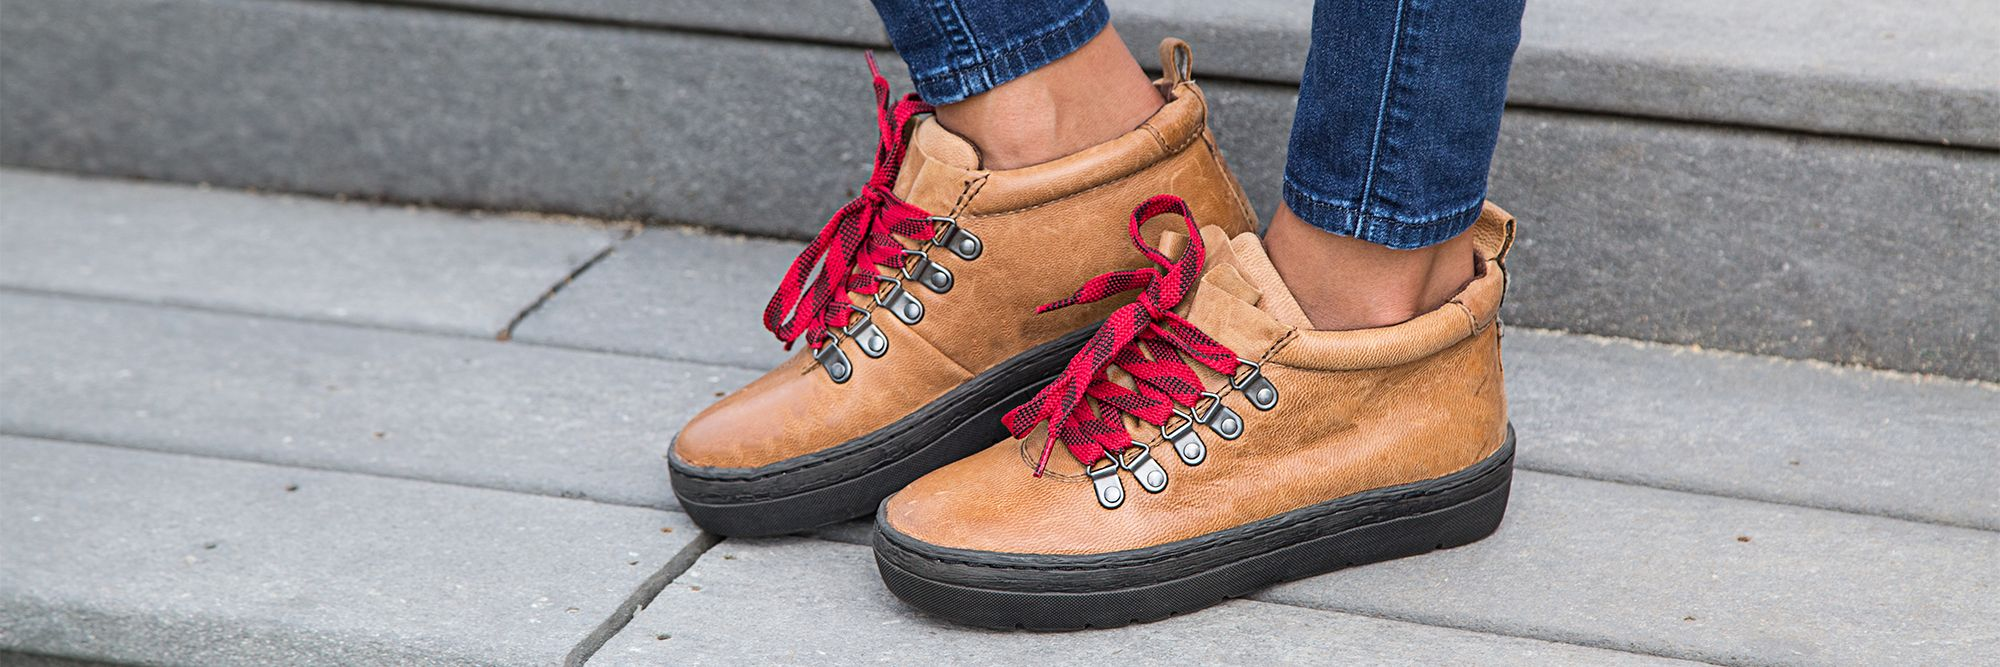 Here's three fun and easy ways you can style your hiking sneakers for fall!